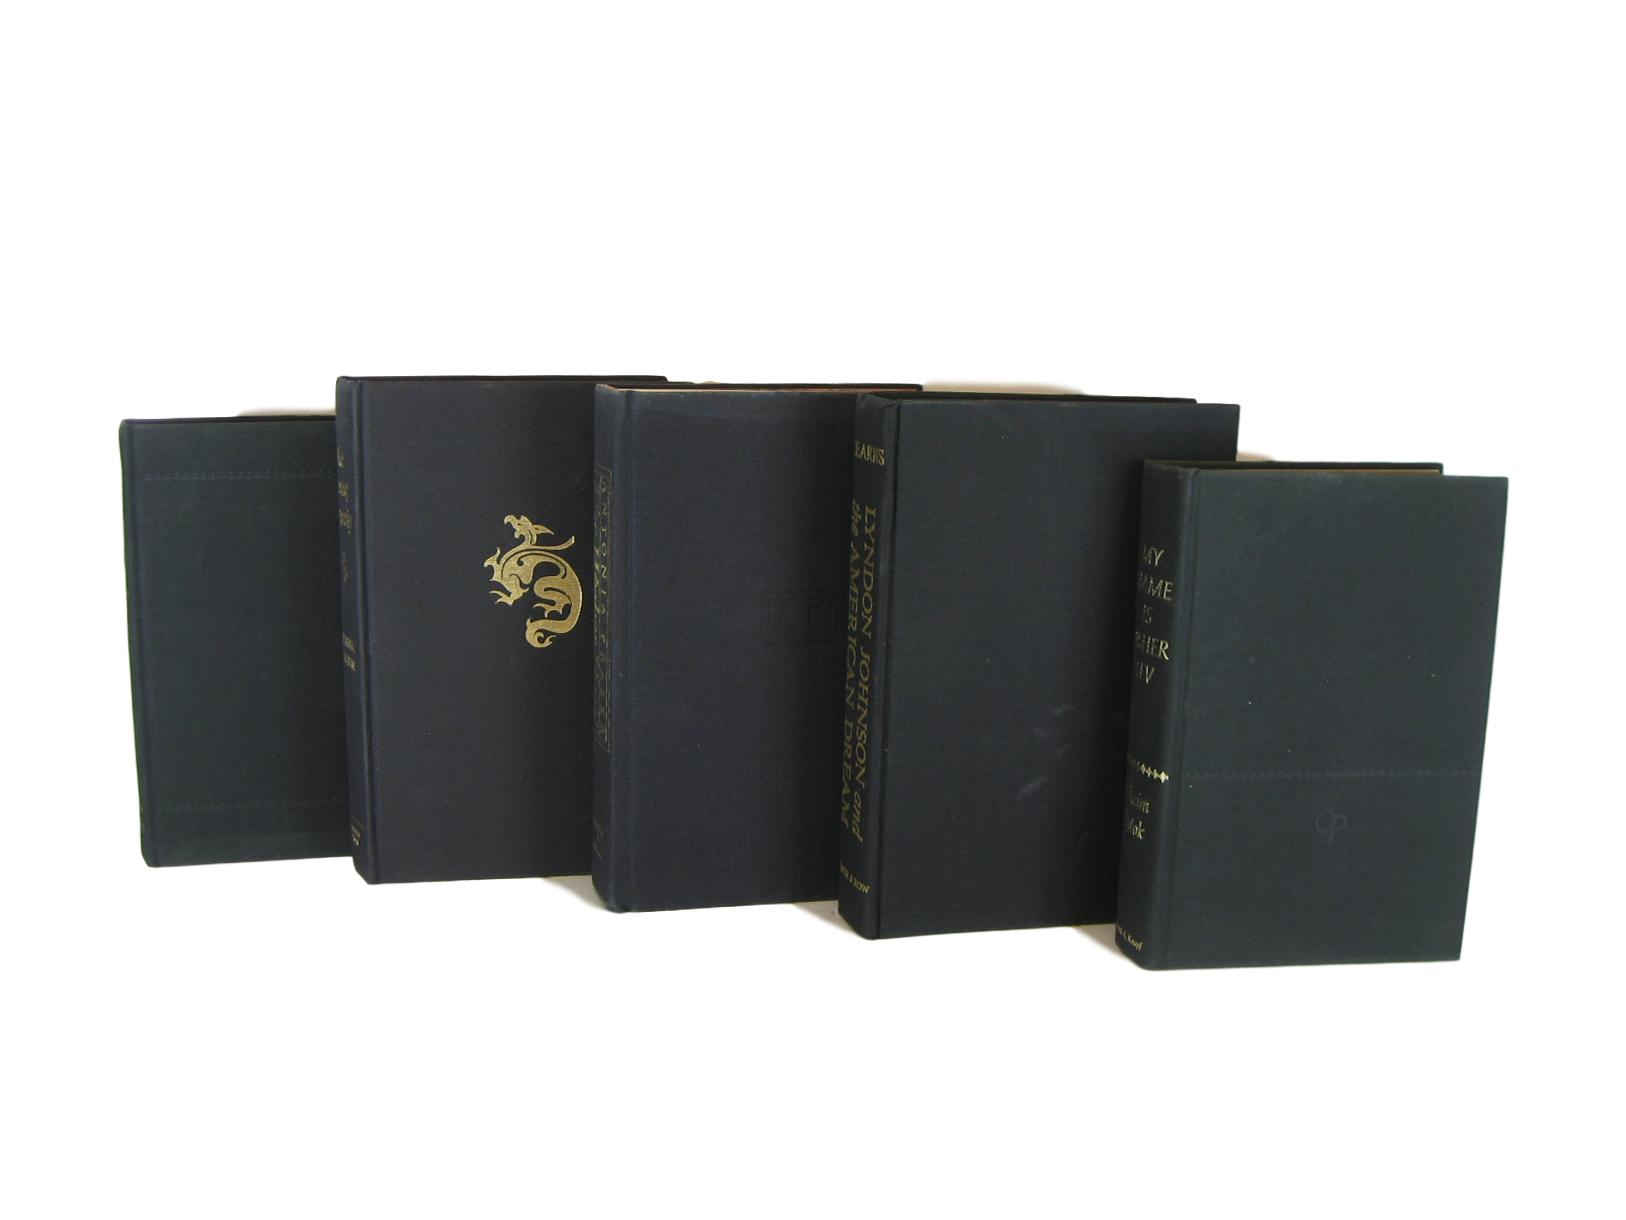 Black Vintage Books for Book Decor and Display, S/5 - Decades of Vintage